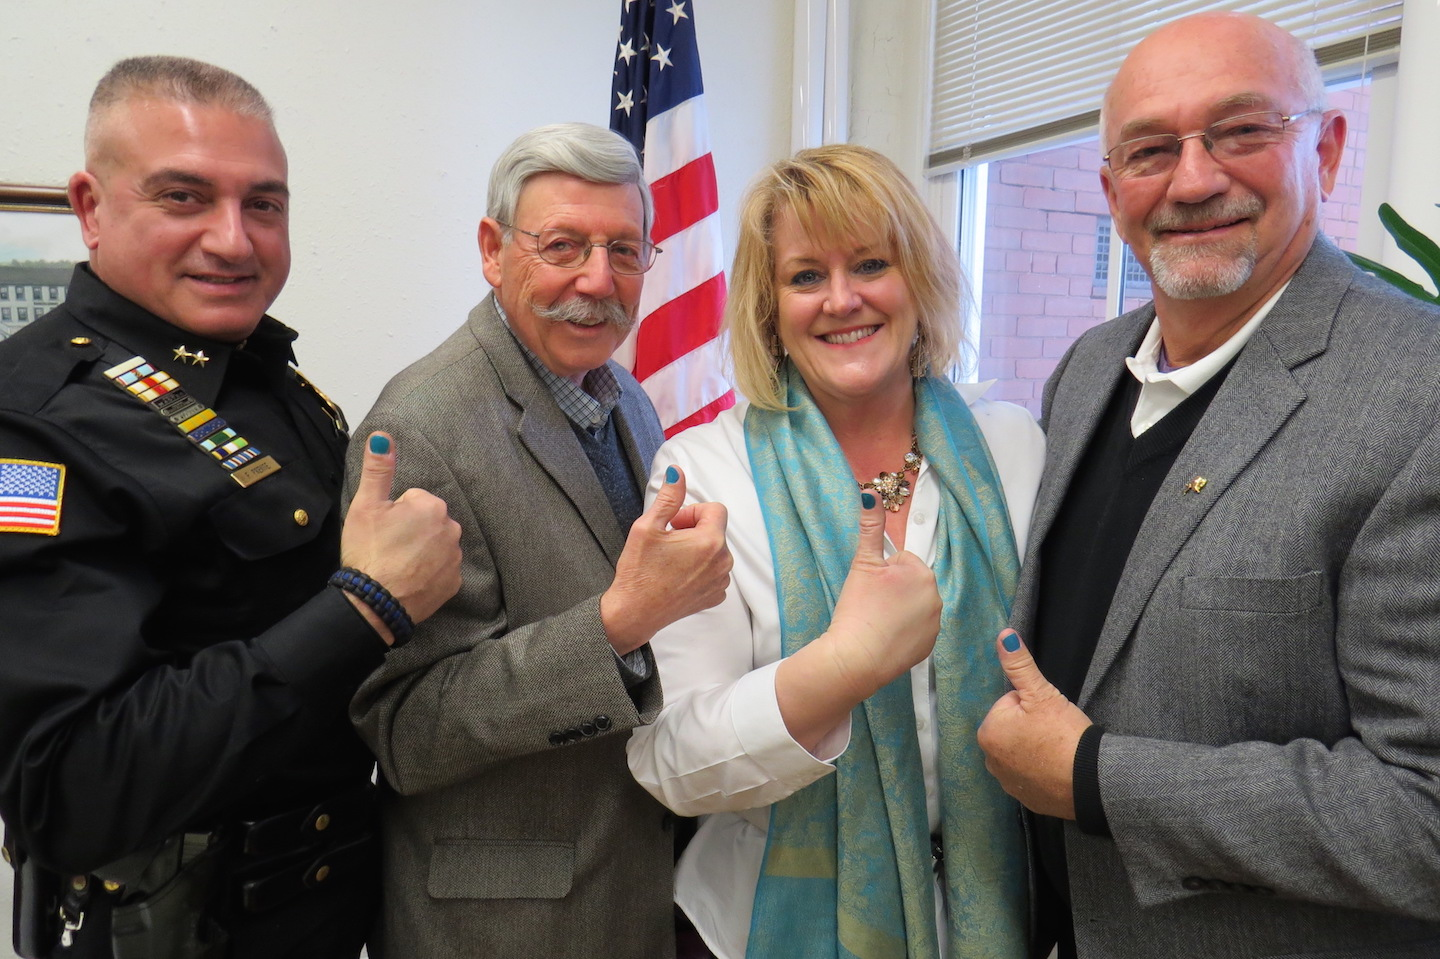 Pictured, from left, giving a teal thumbs up, are LPD Chief Frank Previte, Mayor Terry Collesano, It Happened to Alexa Foundation Executive Director Sandra Lahrache and Deputy Mayor Bruce Sutherland.